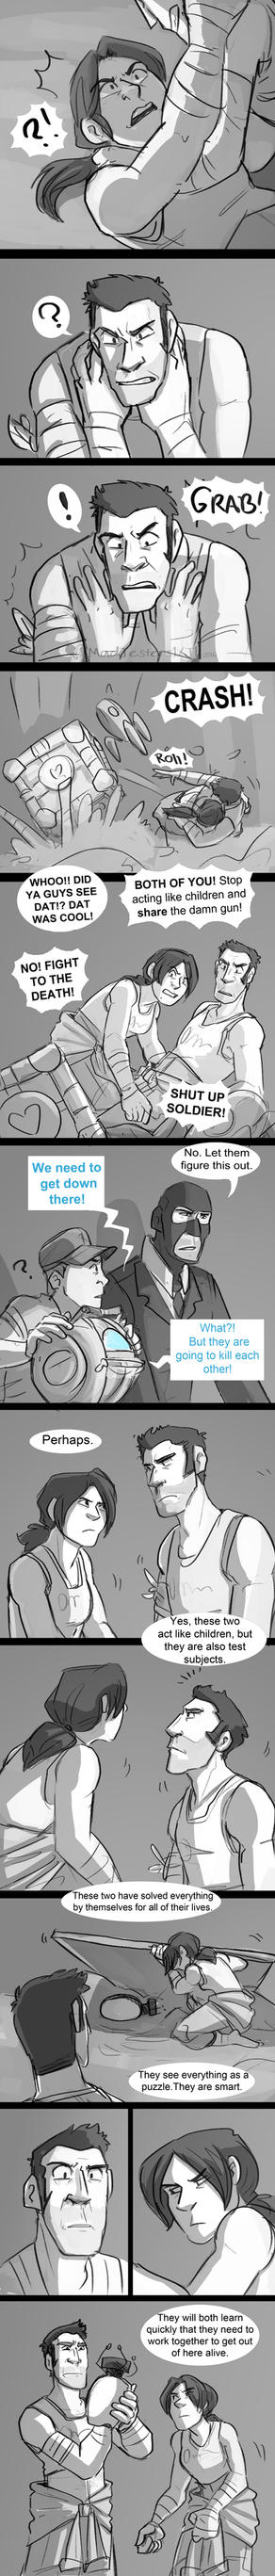 TF2-Long Lost Pg. 77 by MadJesters1